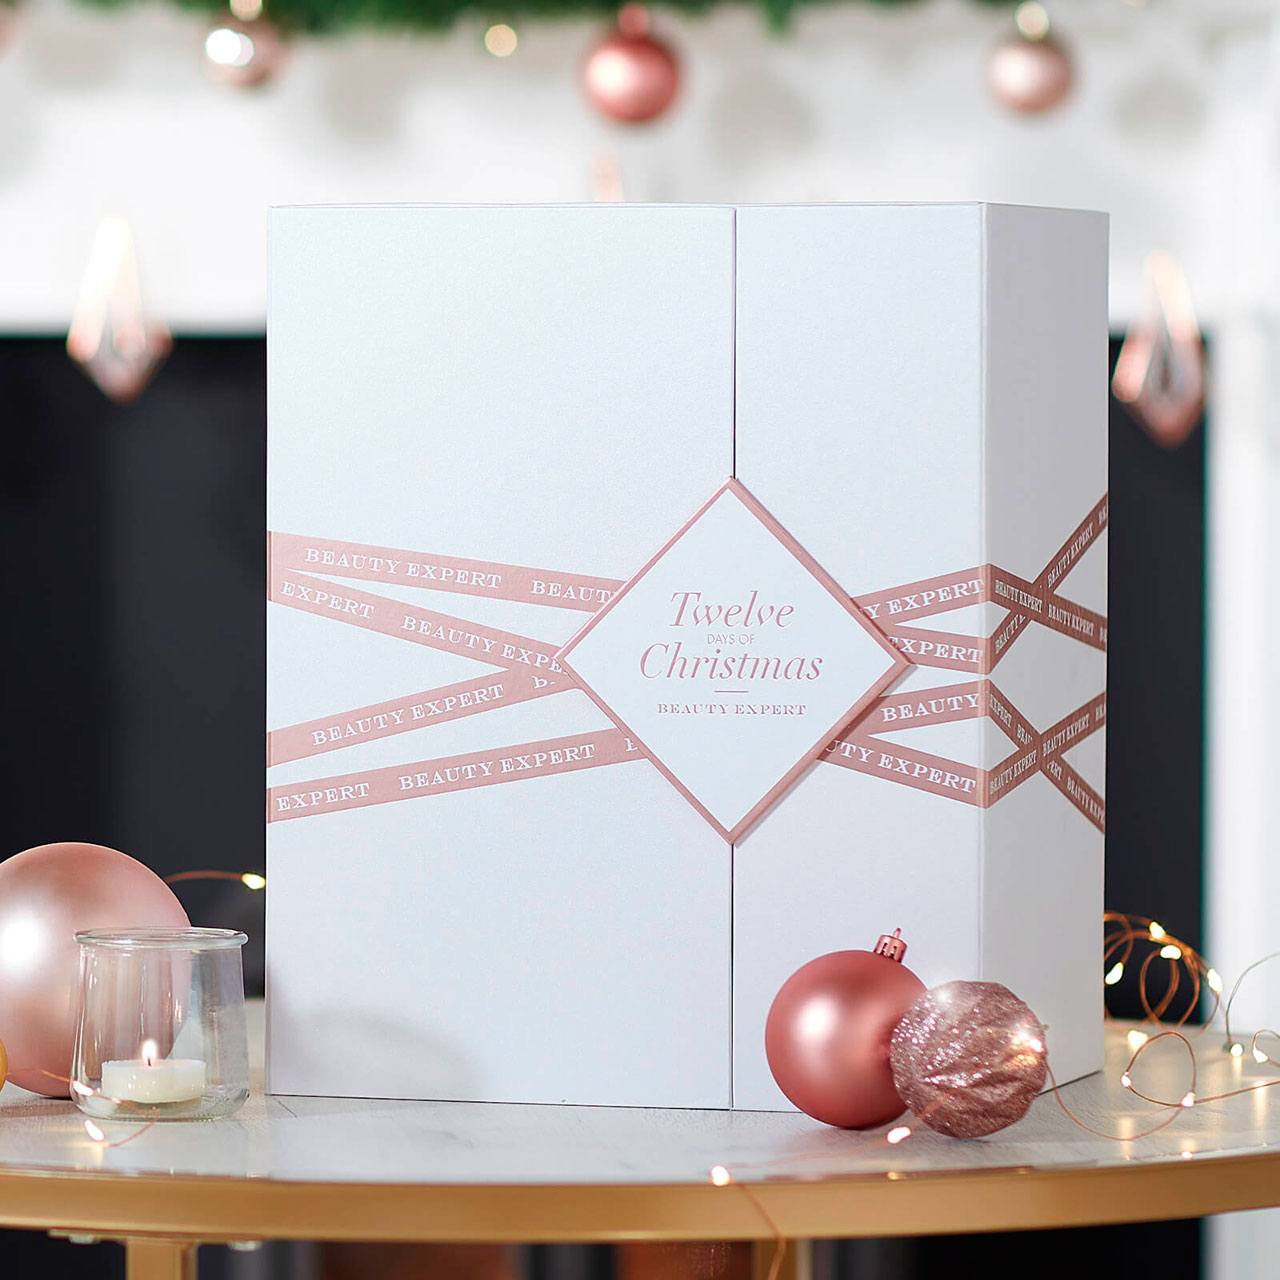 Beauty Expert 12 Day of Christmas 2020